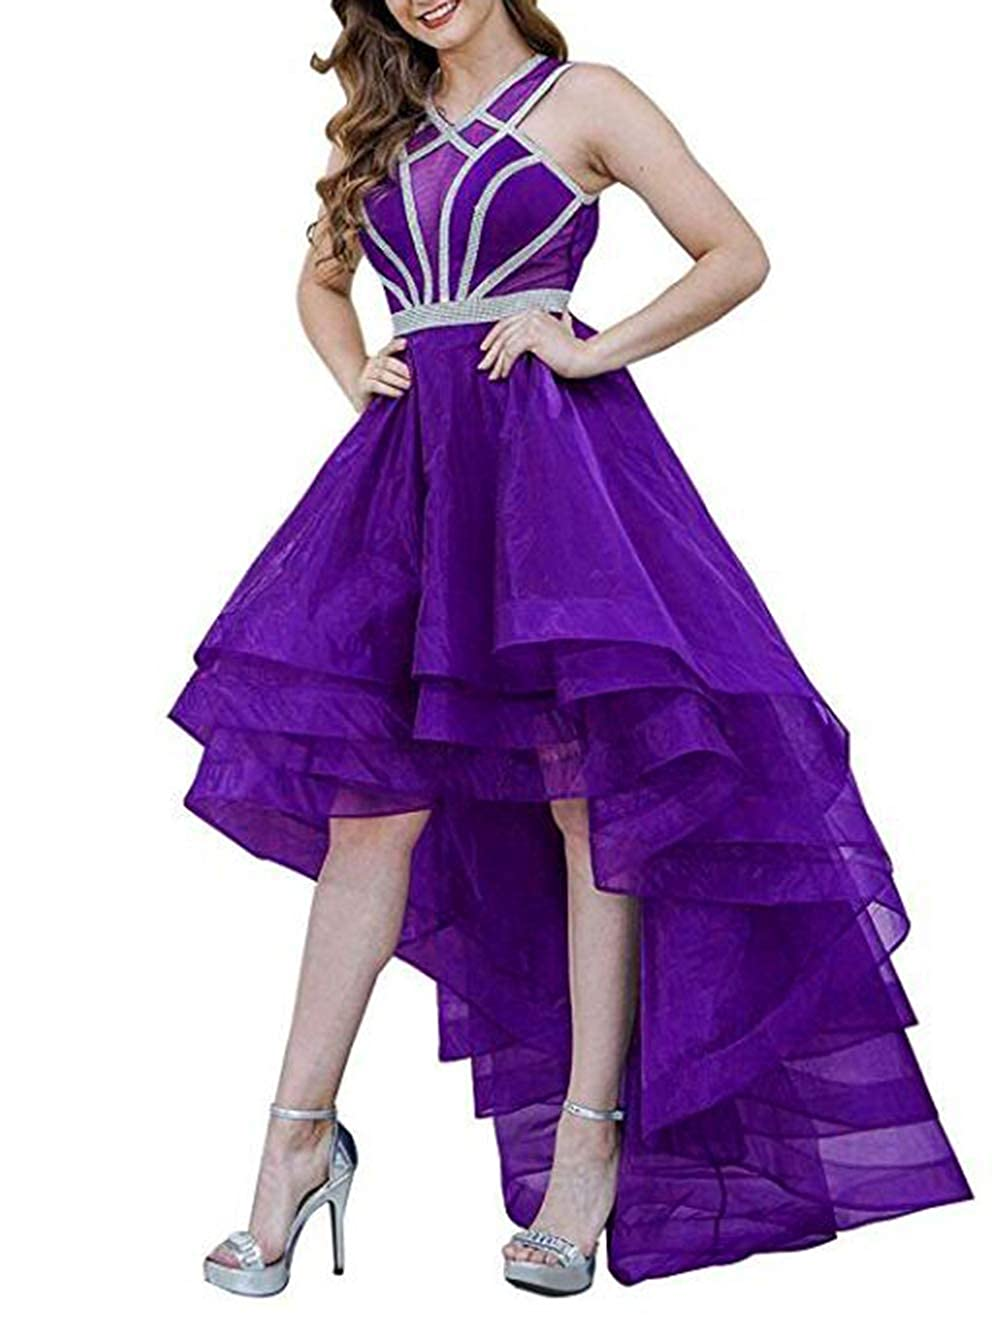 Purple alilith.Z Beaded Homecoming Dresses 2018 High Low Sexy Halter Long Formal Prom Dresses Party Gowns for Women